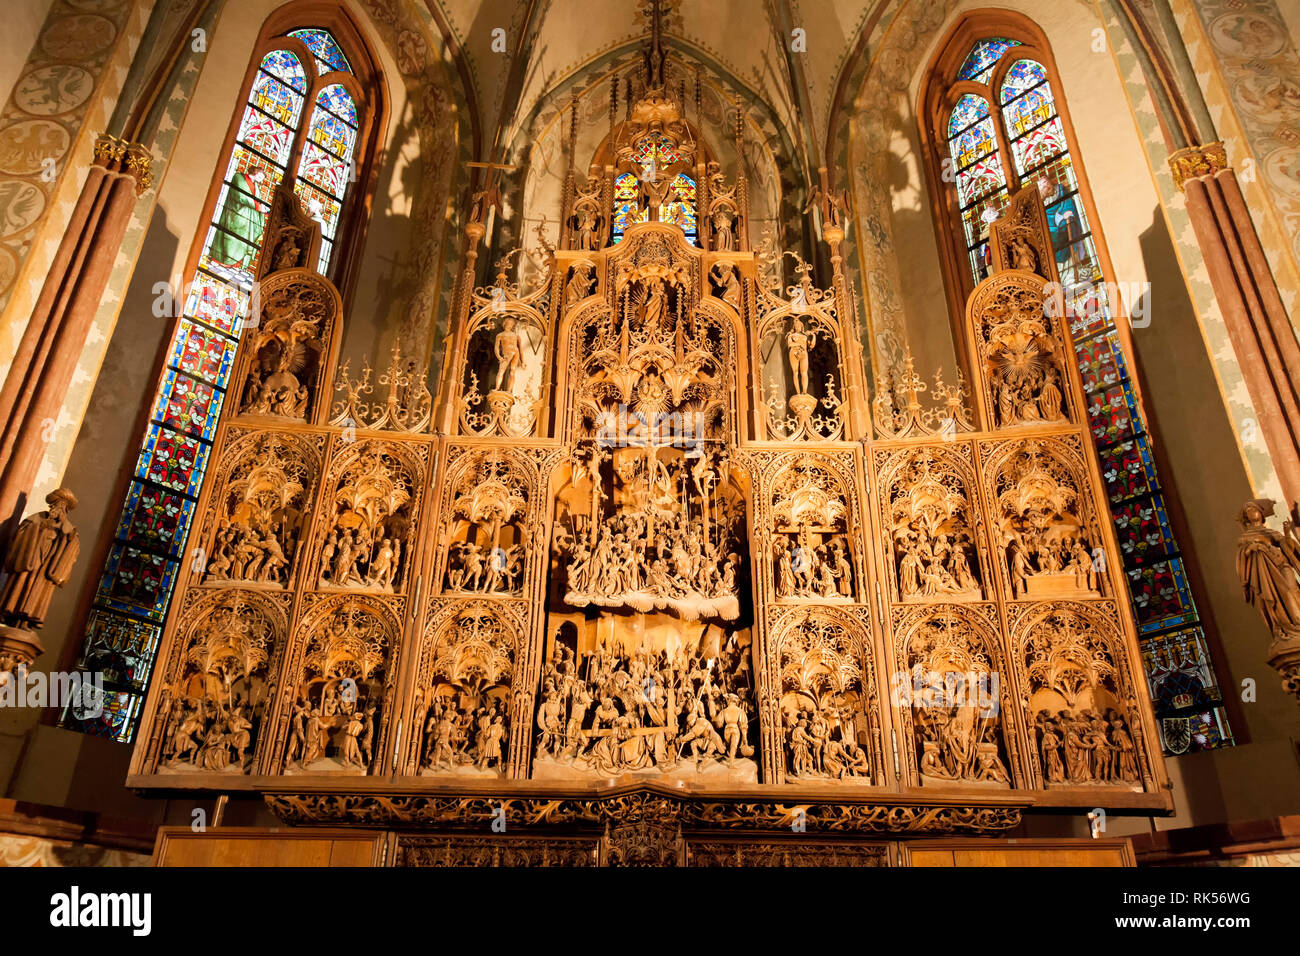 Brueggemann altar or Bordesholmer altar, Schleswig Cathedral, Schleswig, Schleswig-Holstein, Germany, Europe - Stock Image